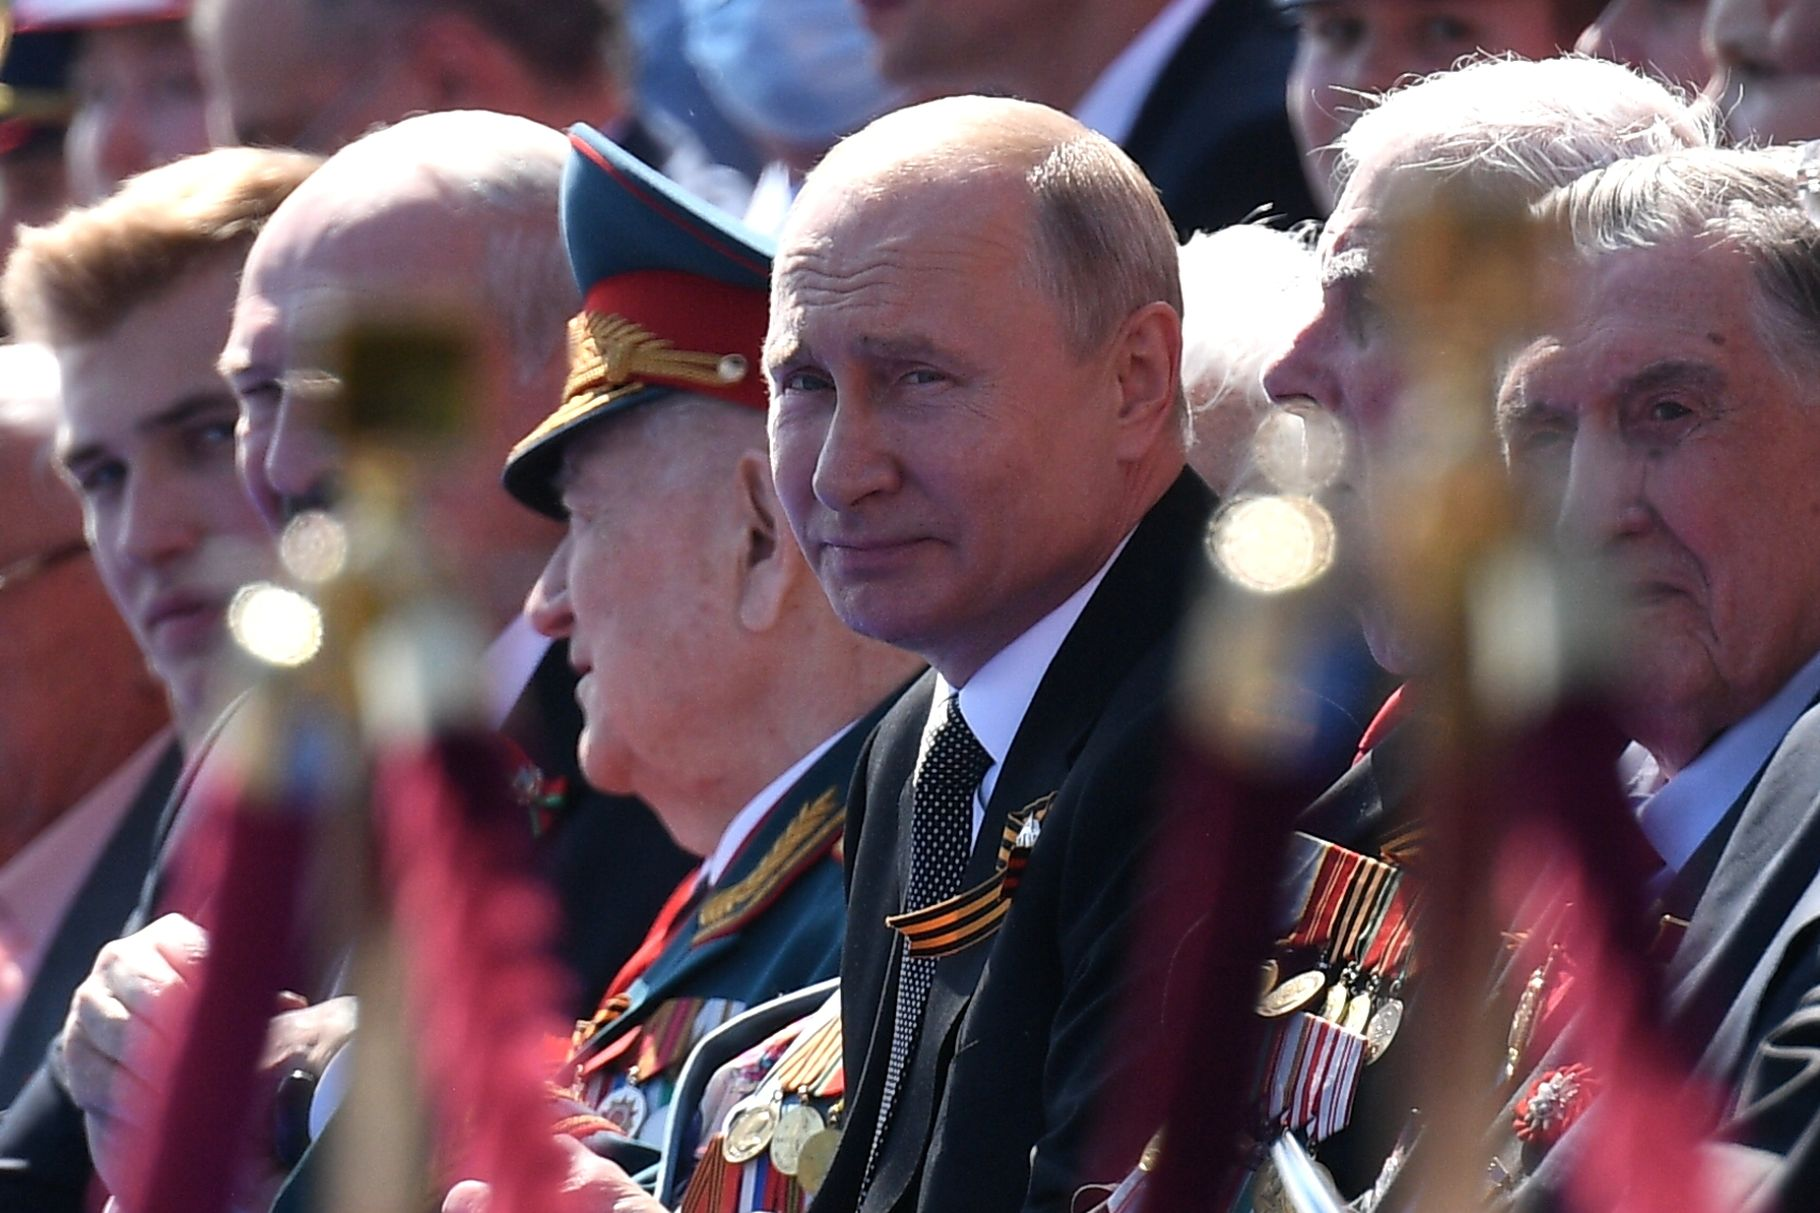 Russia just paved the way for Putin to be president for life